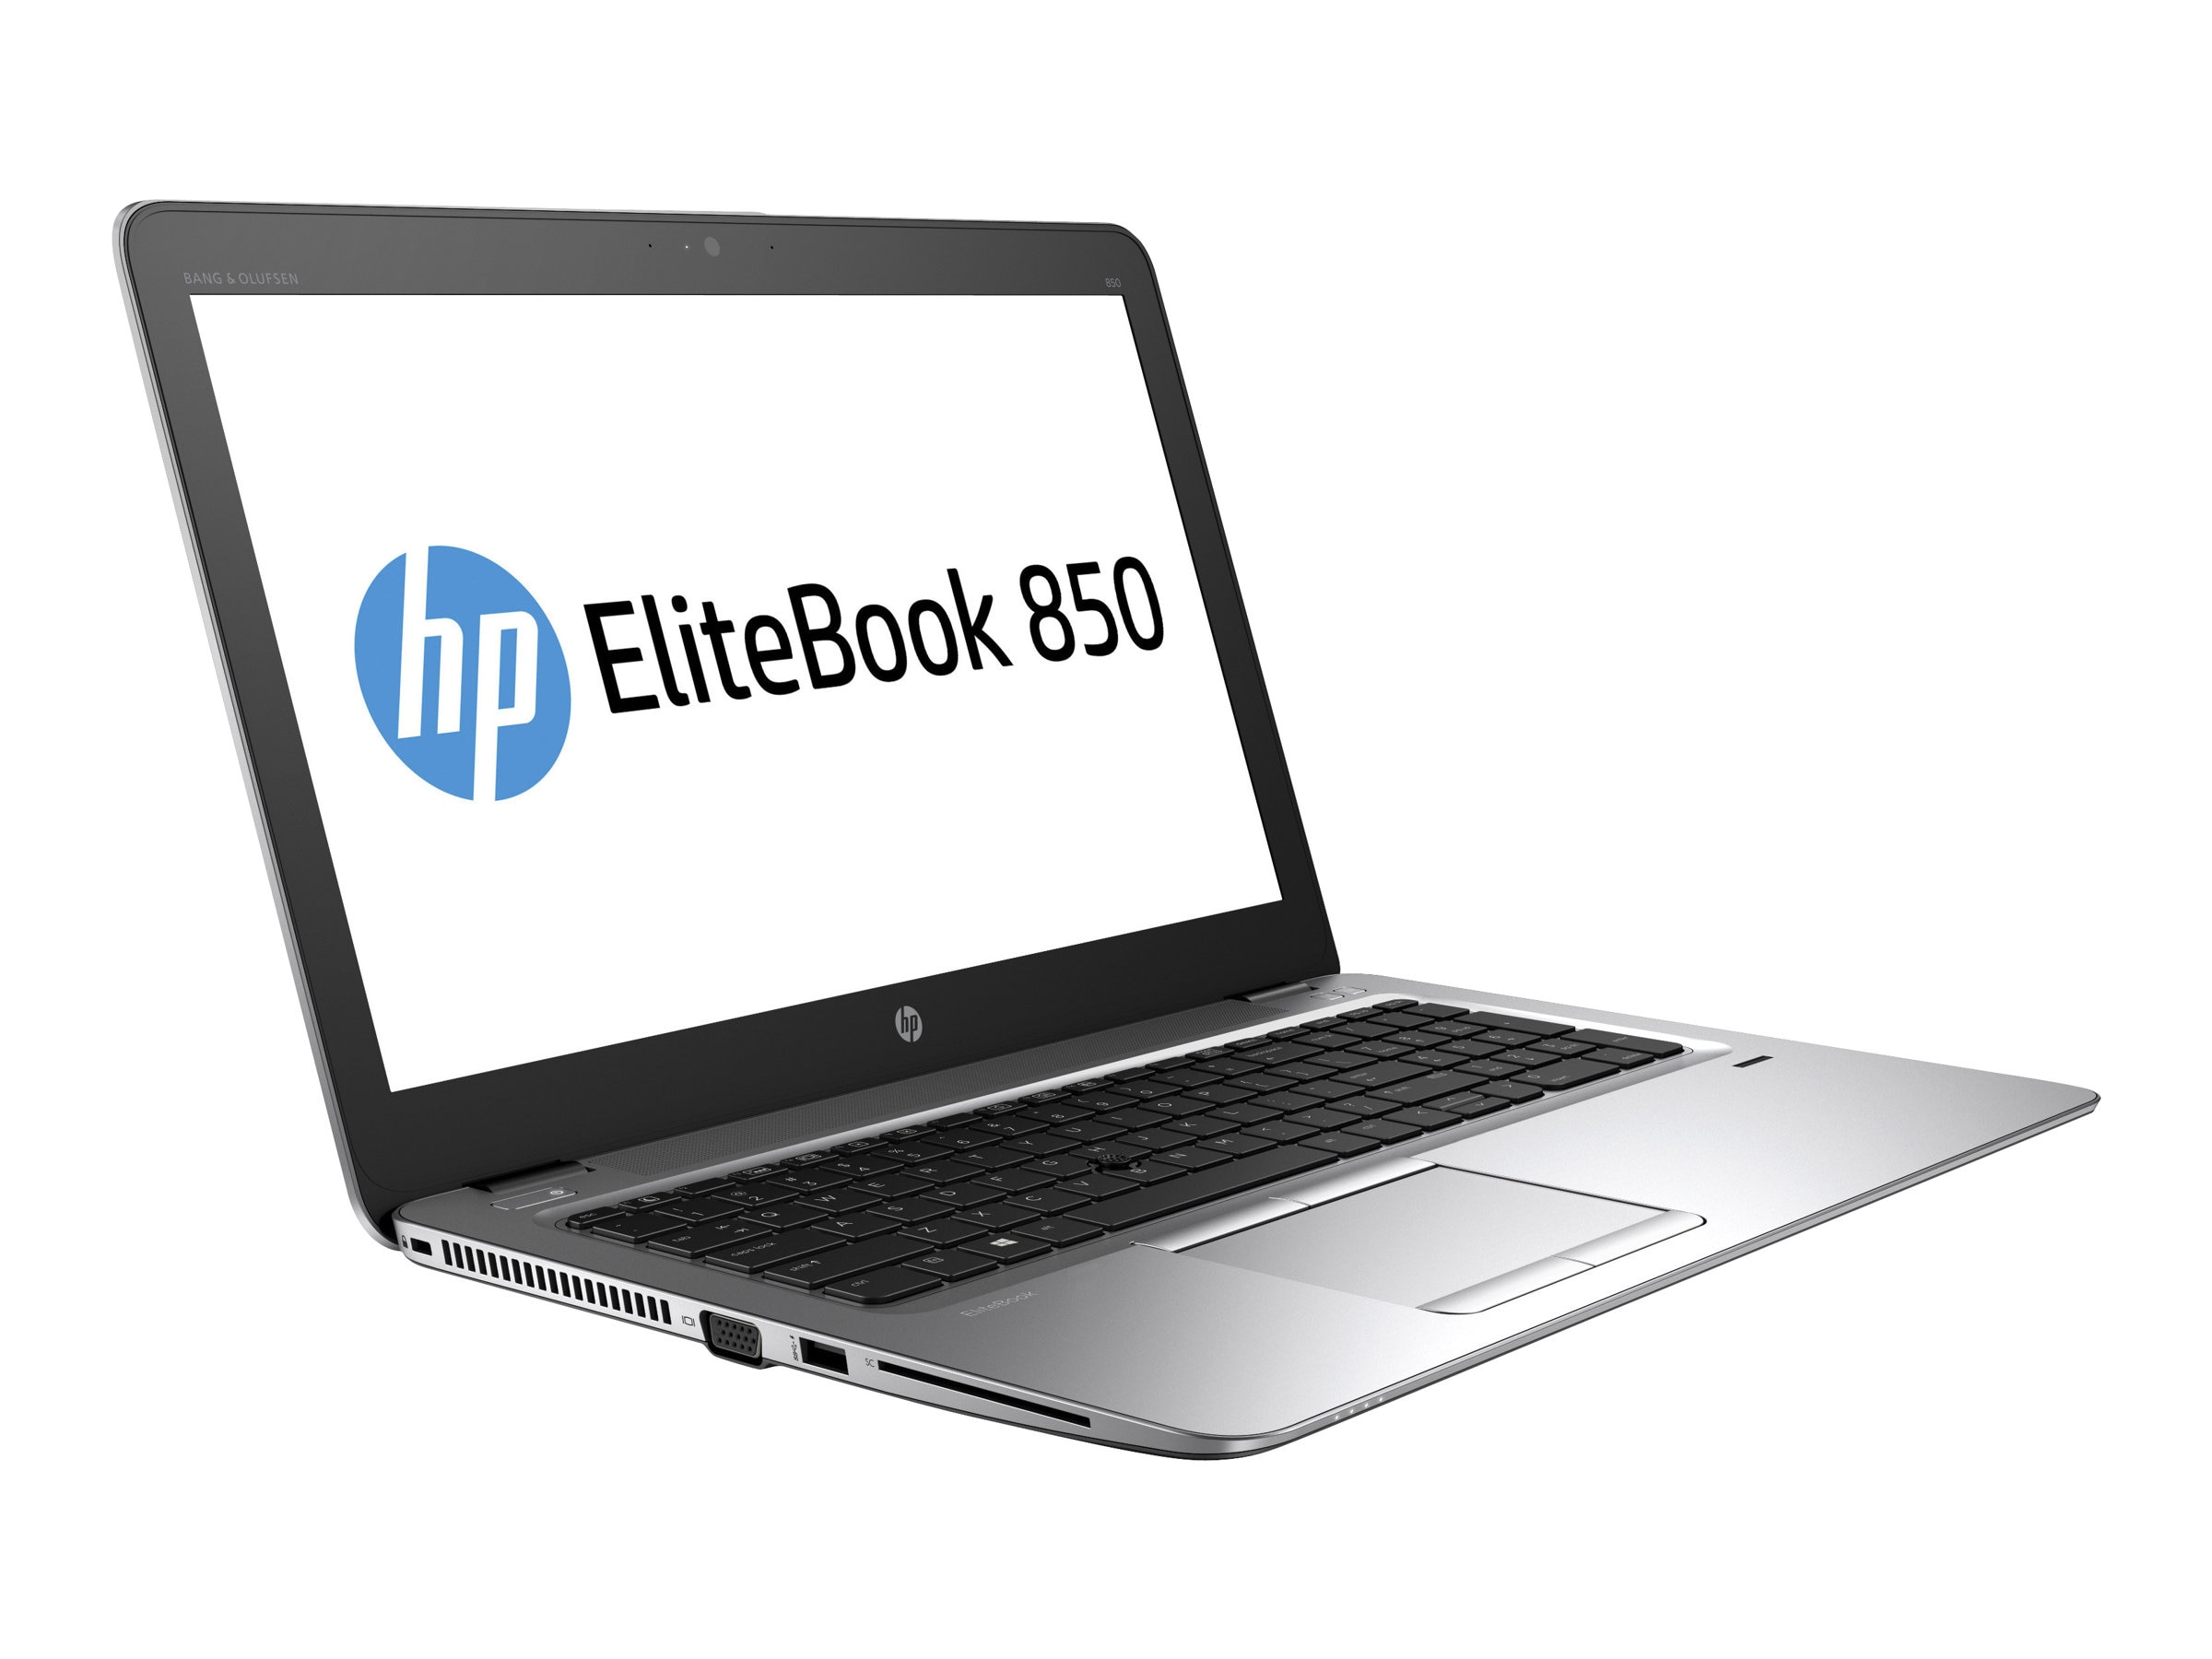 HP EliteBook 850 G3 2.4GHz Core i5 15.6in display, W4Z98AW#ABA